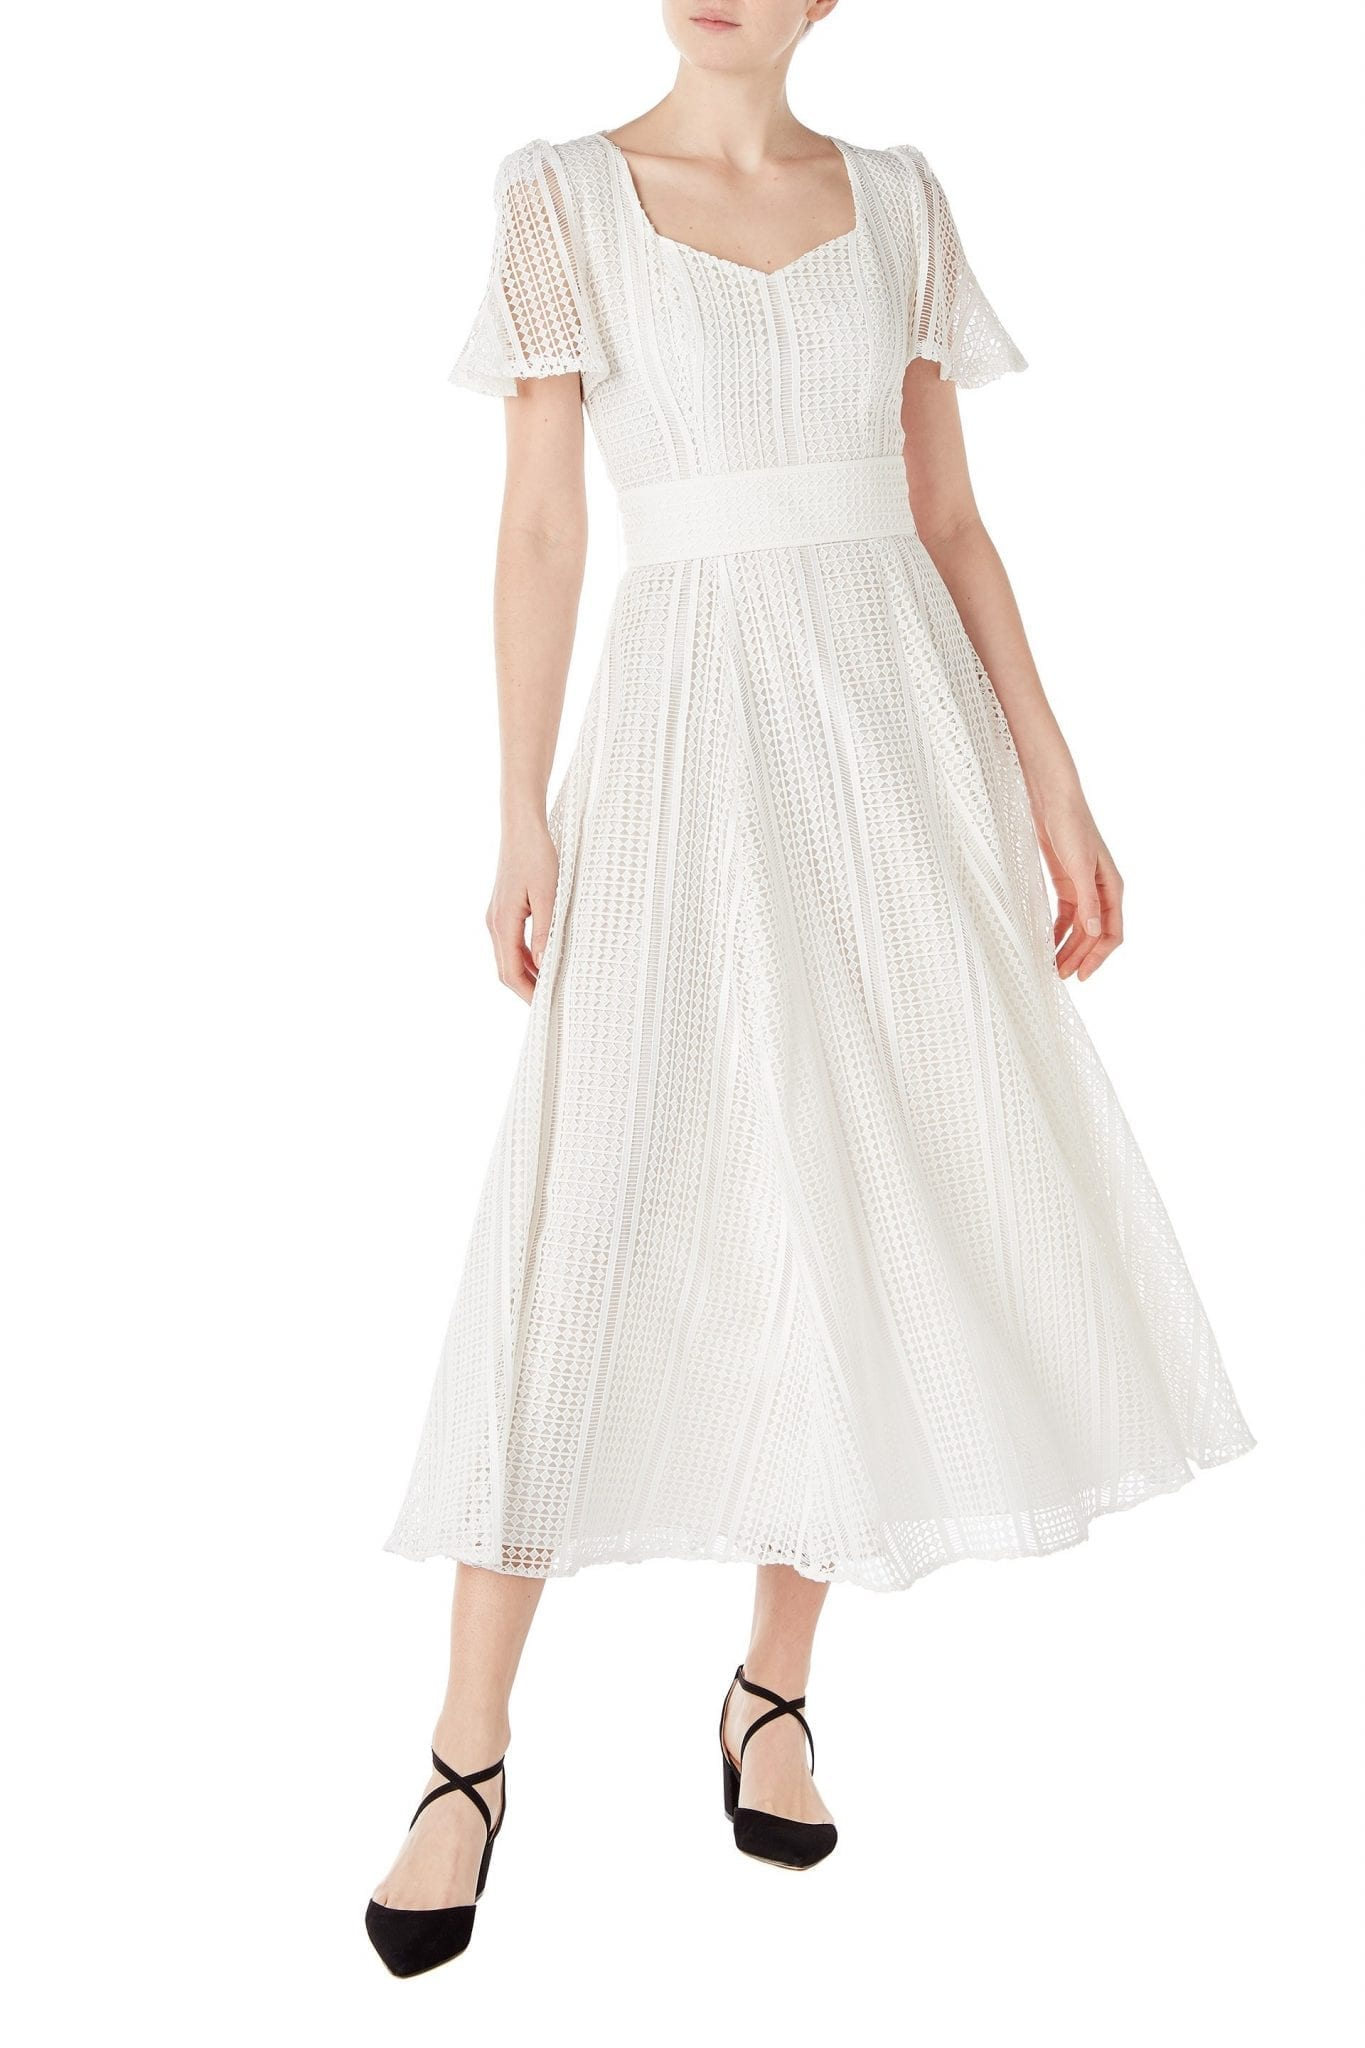 GOAT FASHION Julip Venice Lace Midi Dress